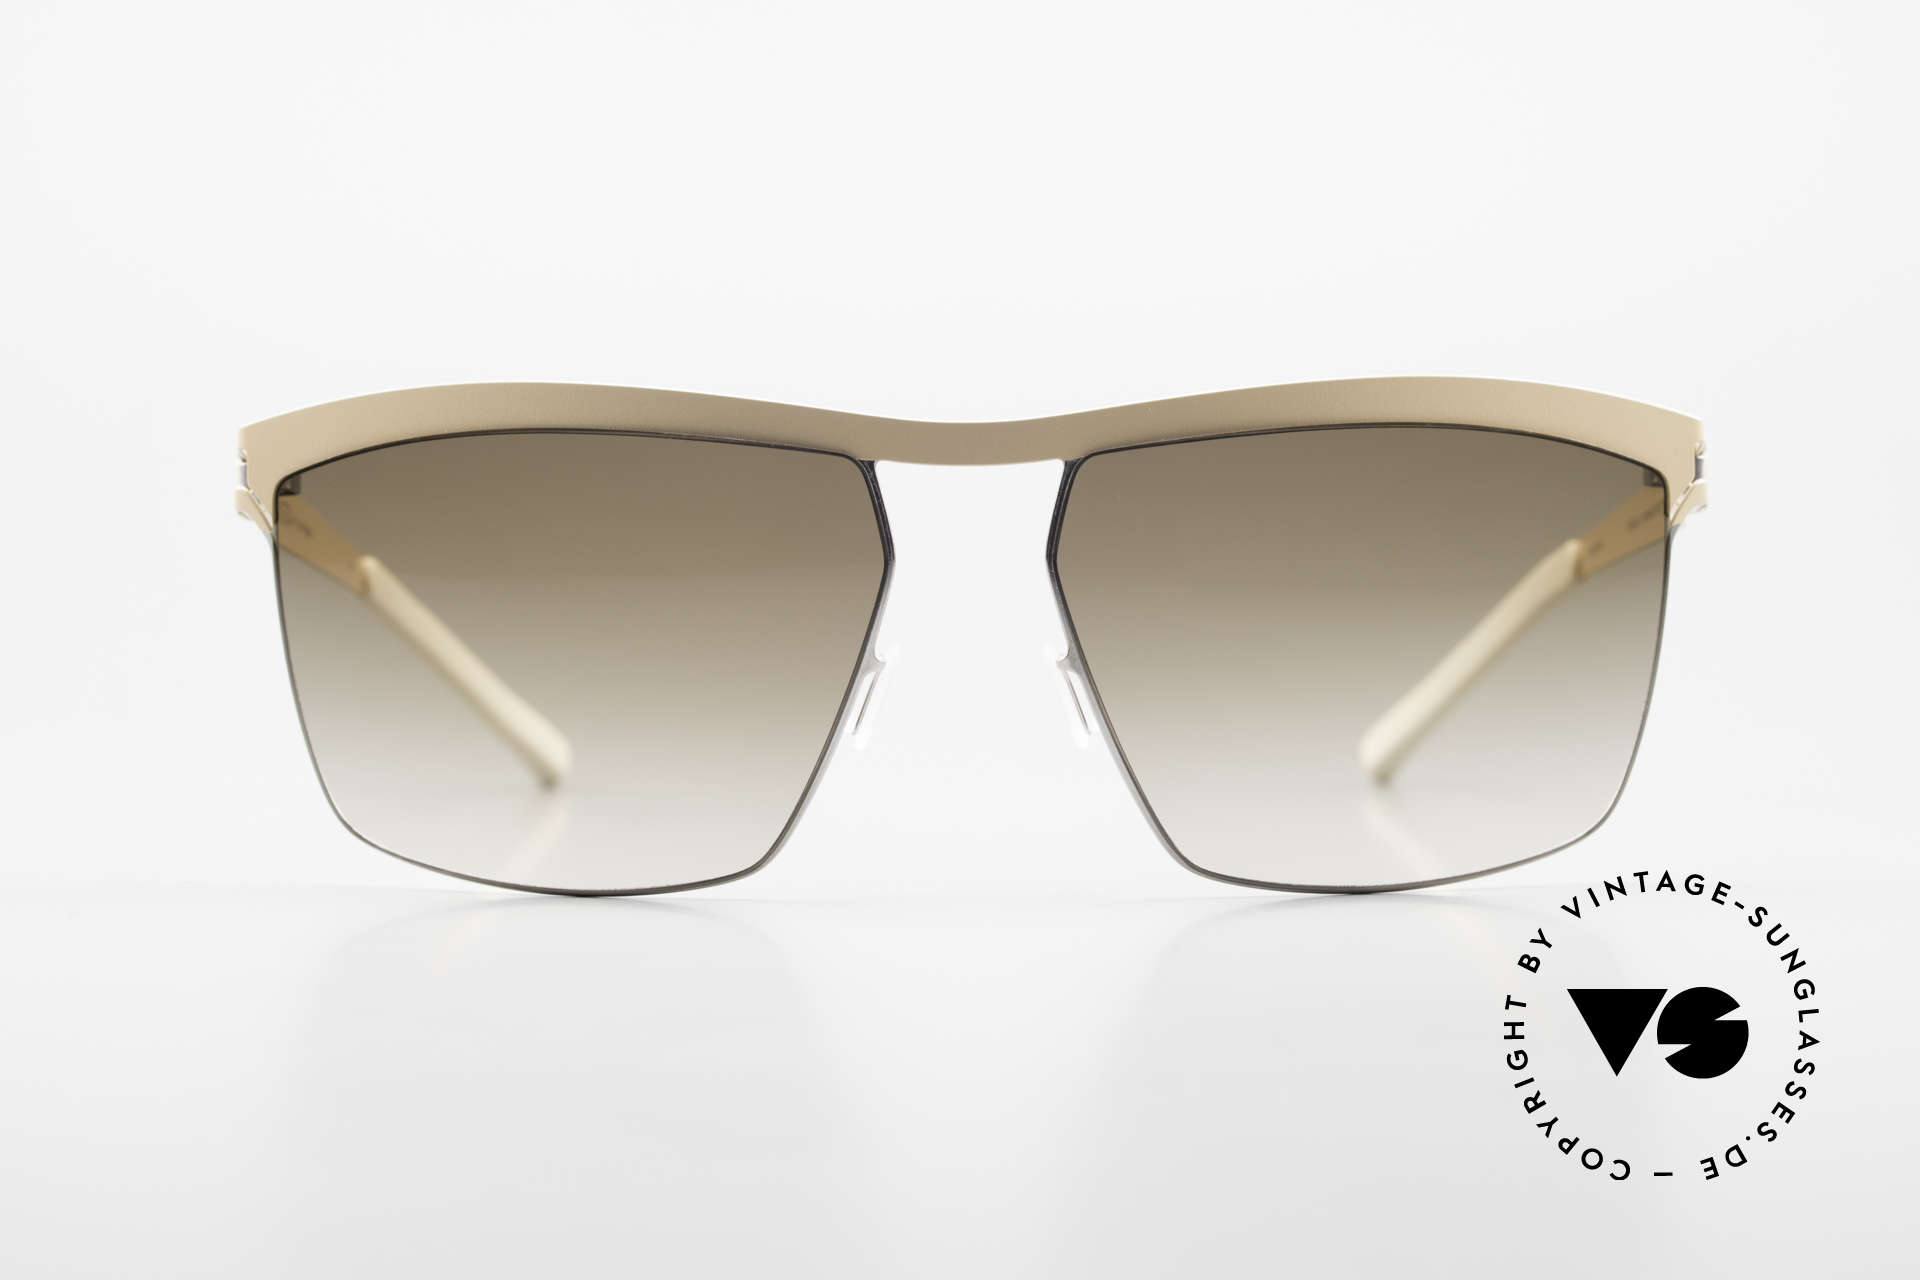 Mykita Tiago Designer Sunglasses Unisex, MYKITA: the youngest brand in our vintage collection, Made for Men and Women